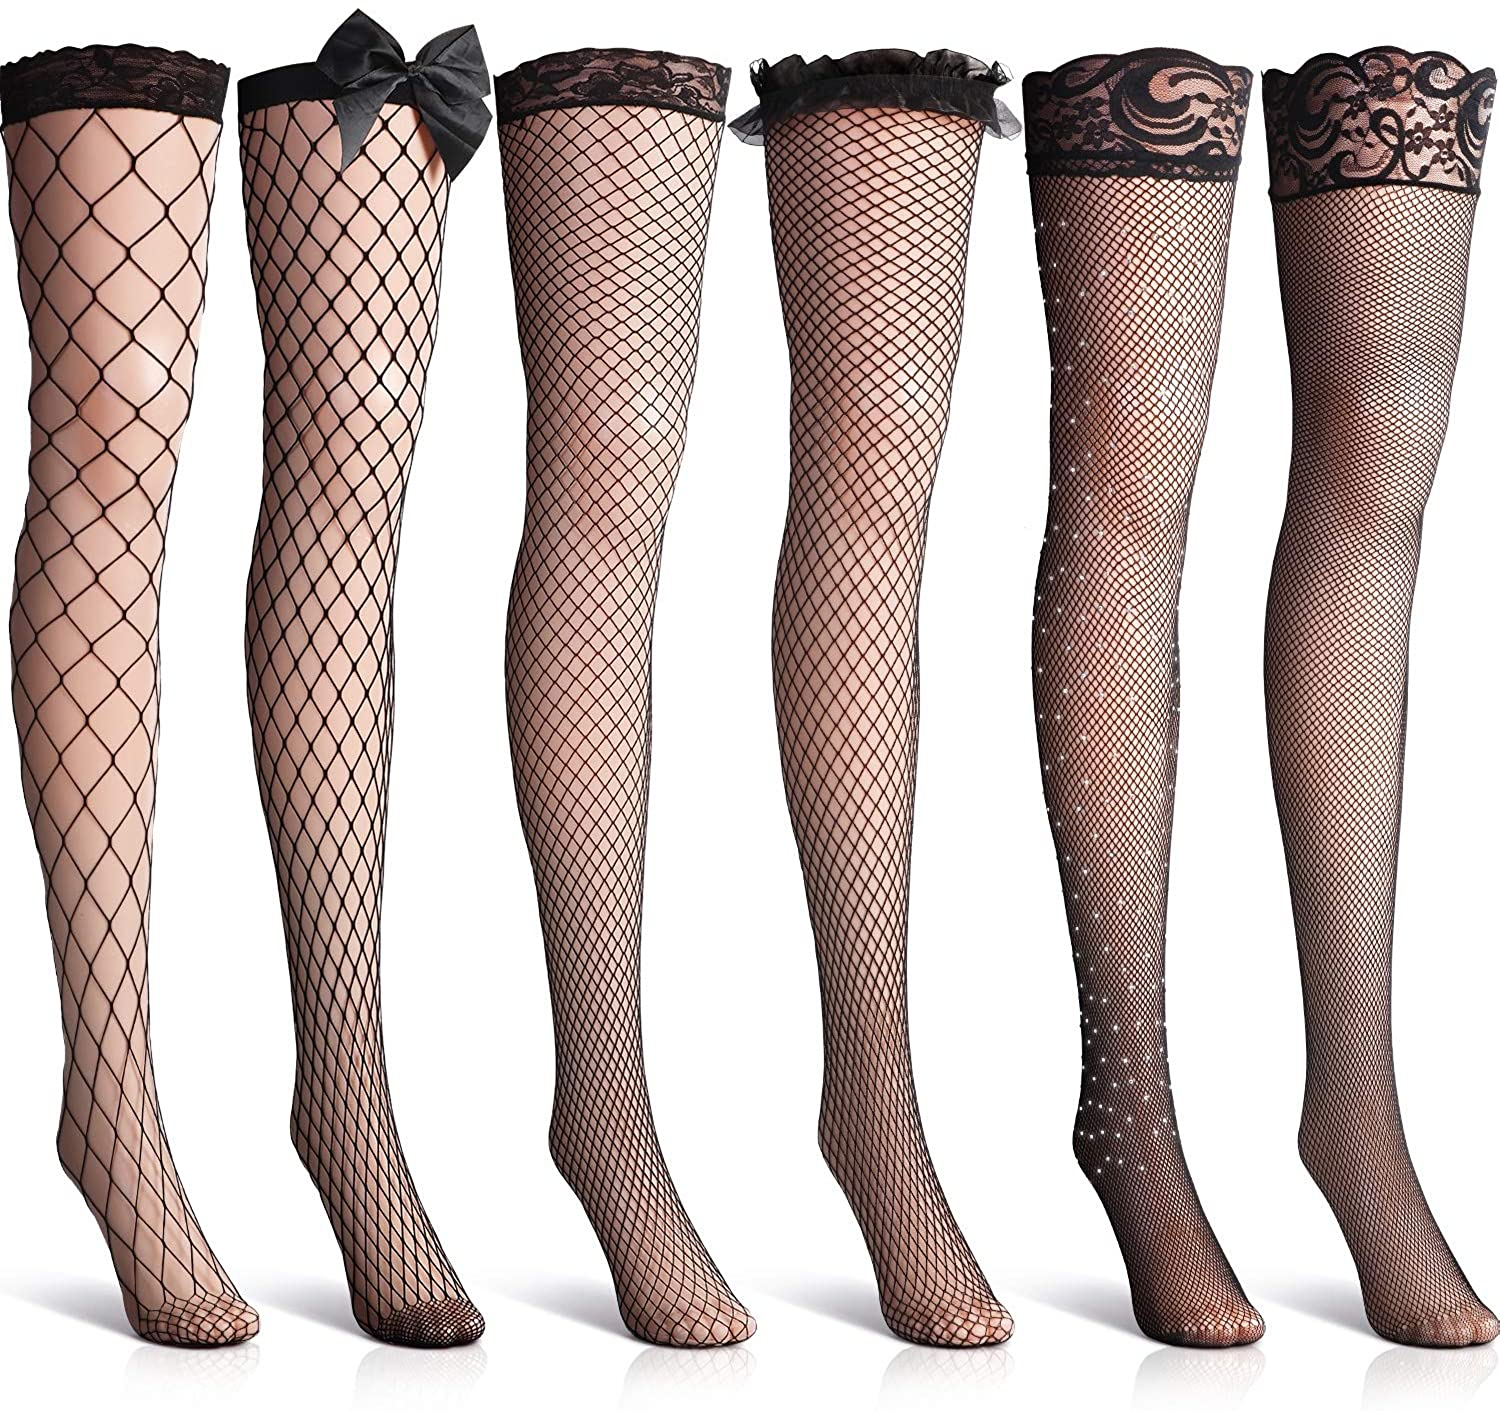 6 Pairs Fishnet Thigh High Stocking Black Lace Top Over the Knee Stocking Rhinestone Bow: Clothing